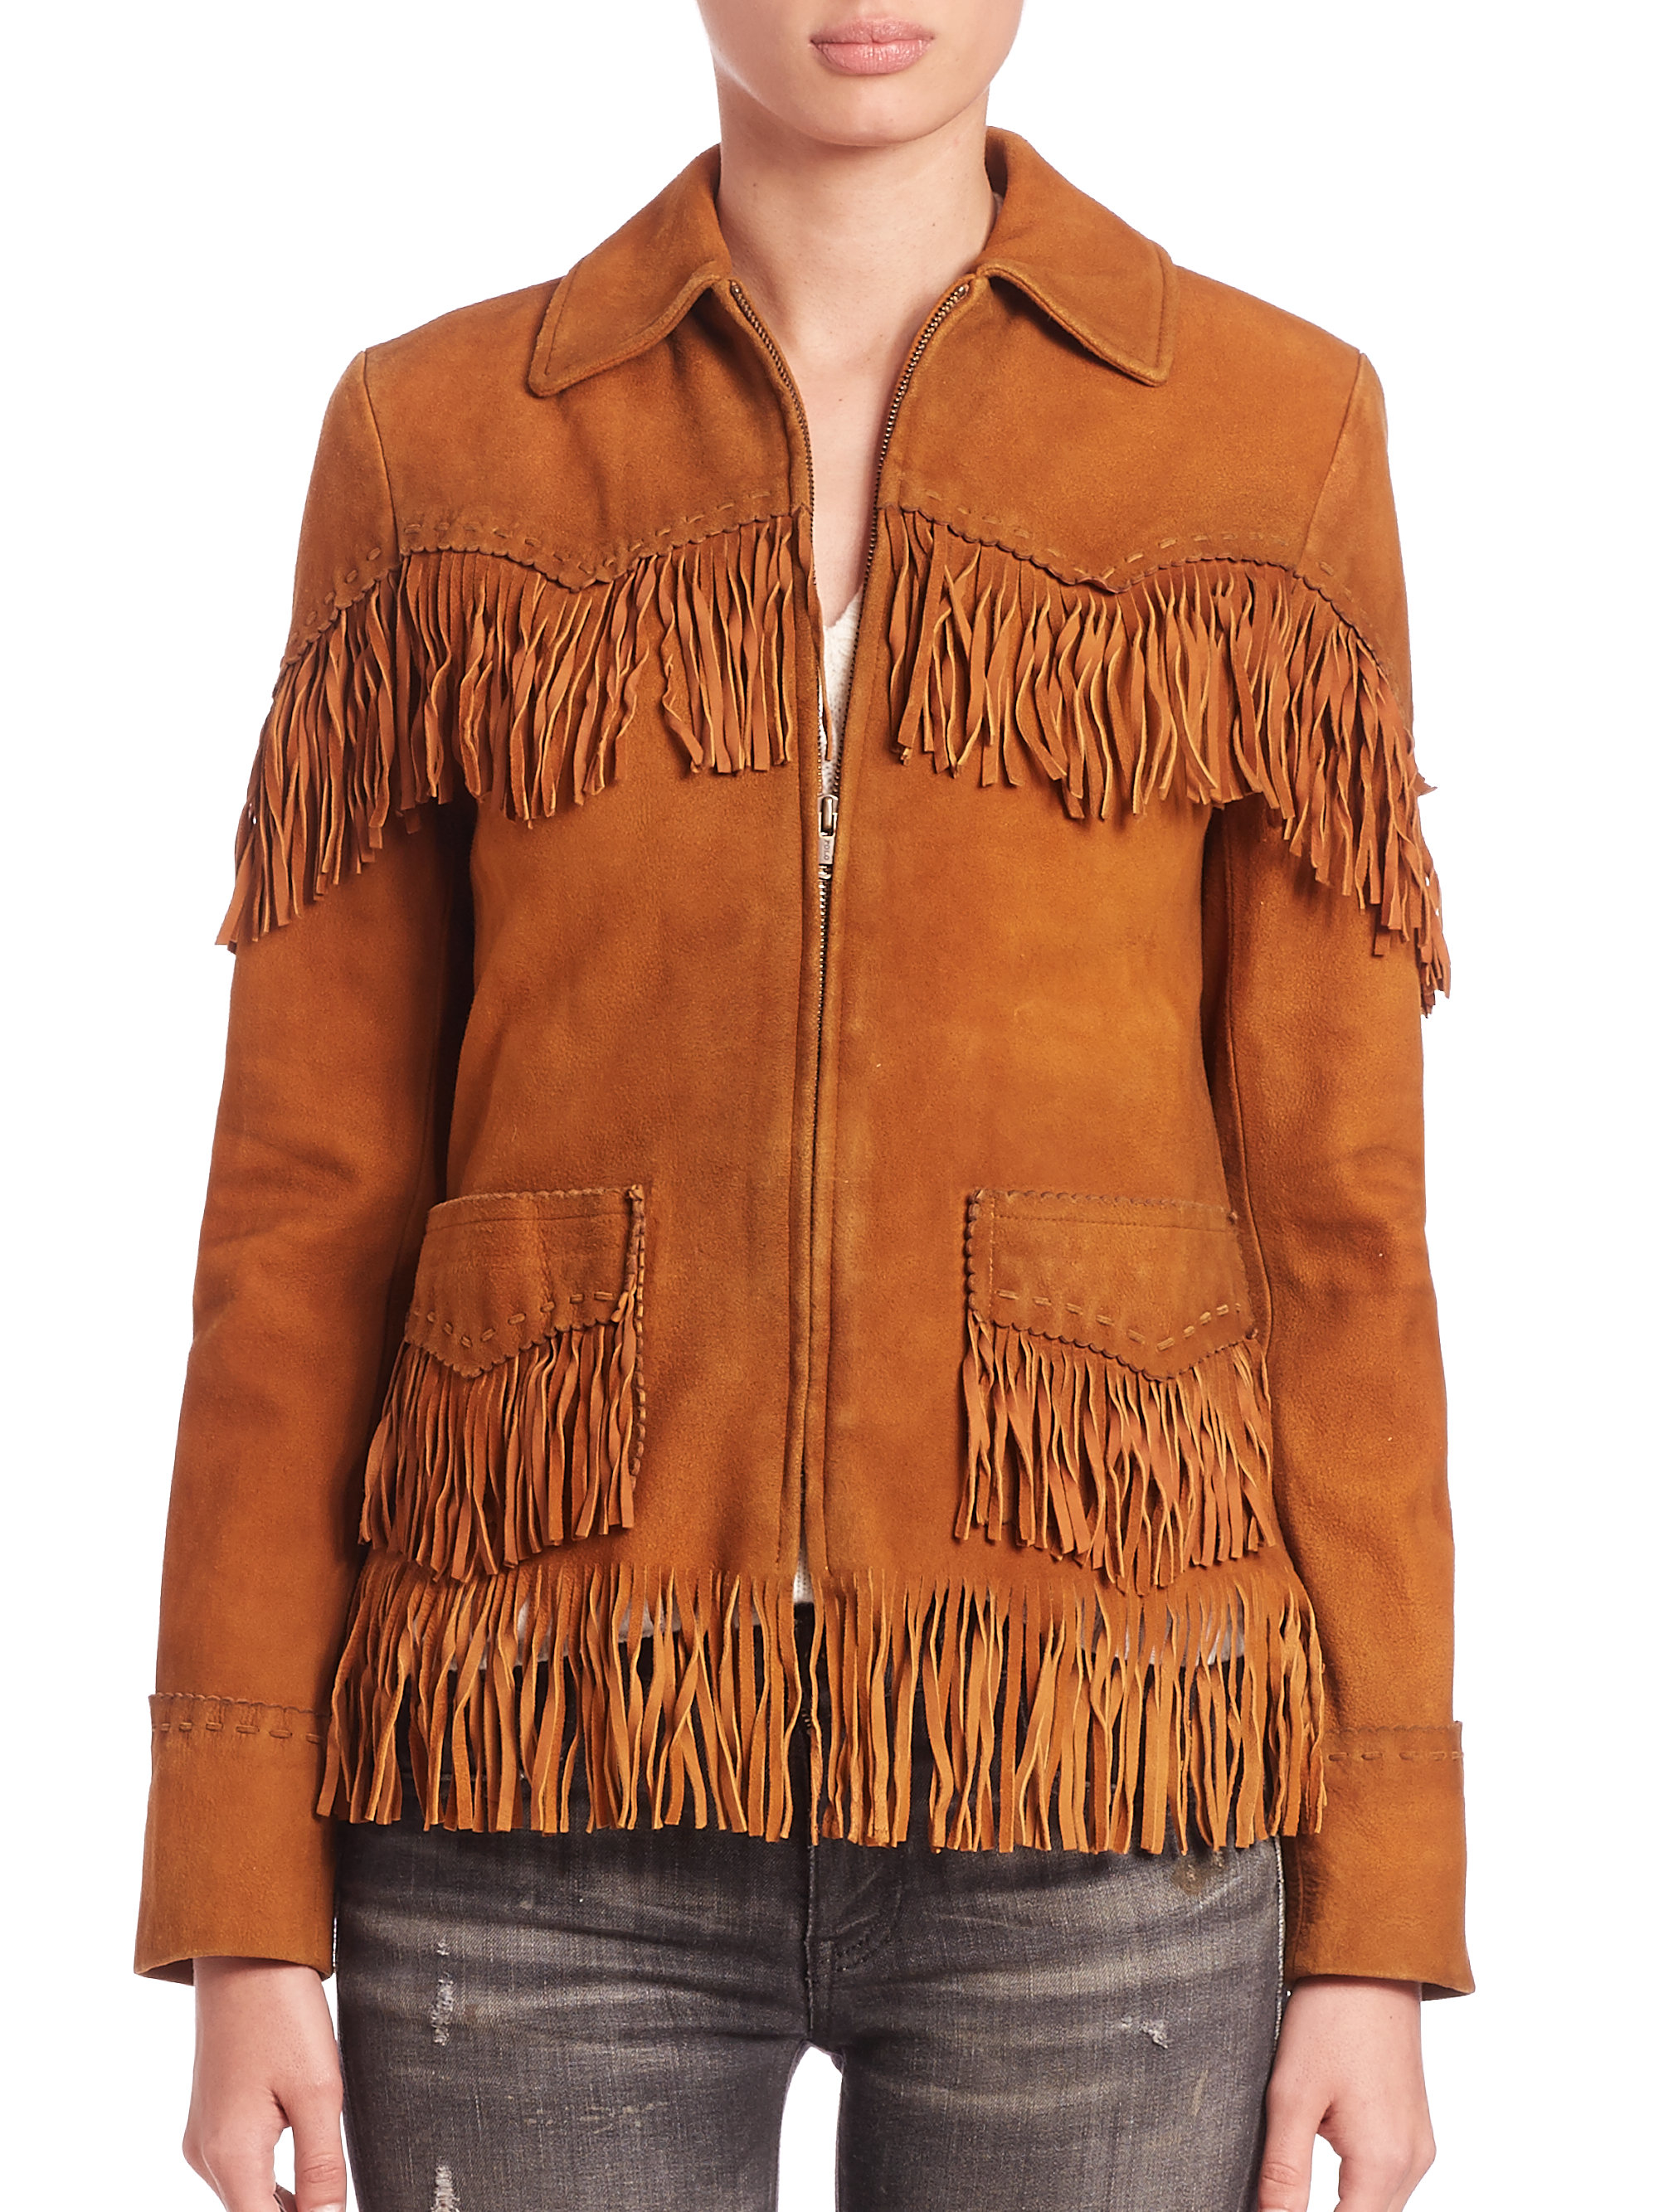 Suede Jacket Outfits For Men 20 Ways To Wear A Suede Jacket: Polo Ralph Lauren Fringed Suede Jacket In Brown